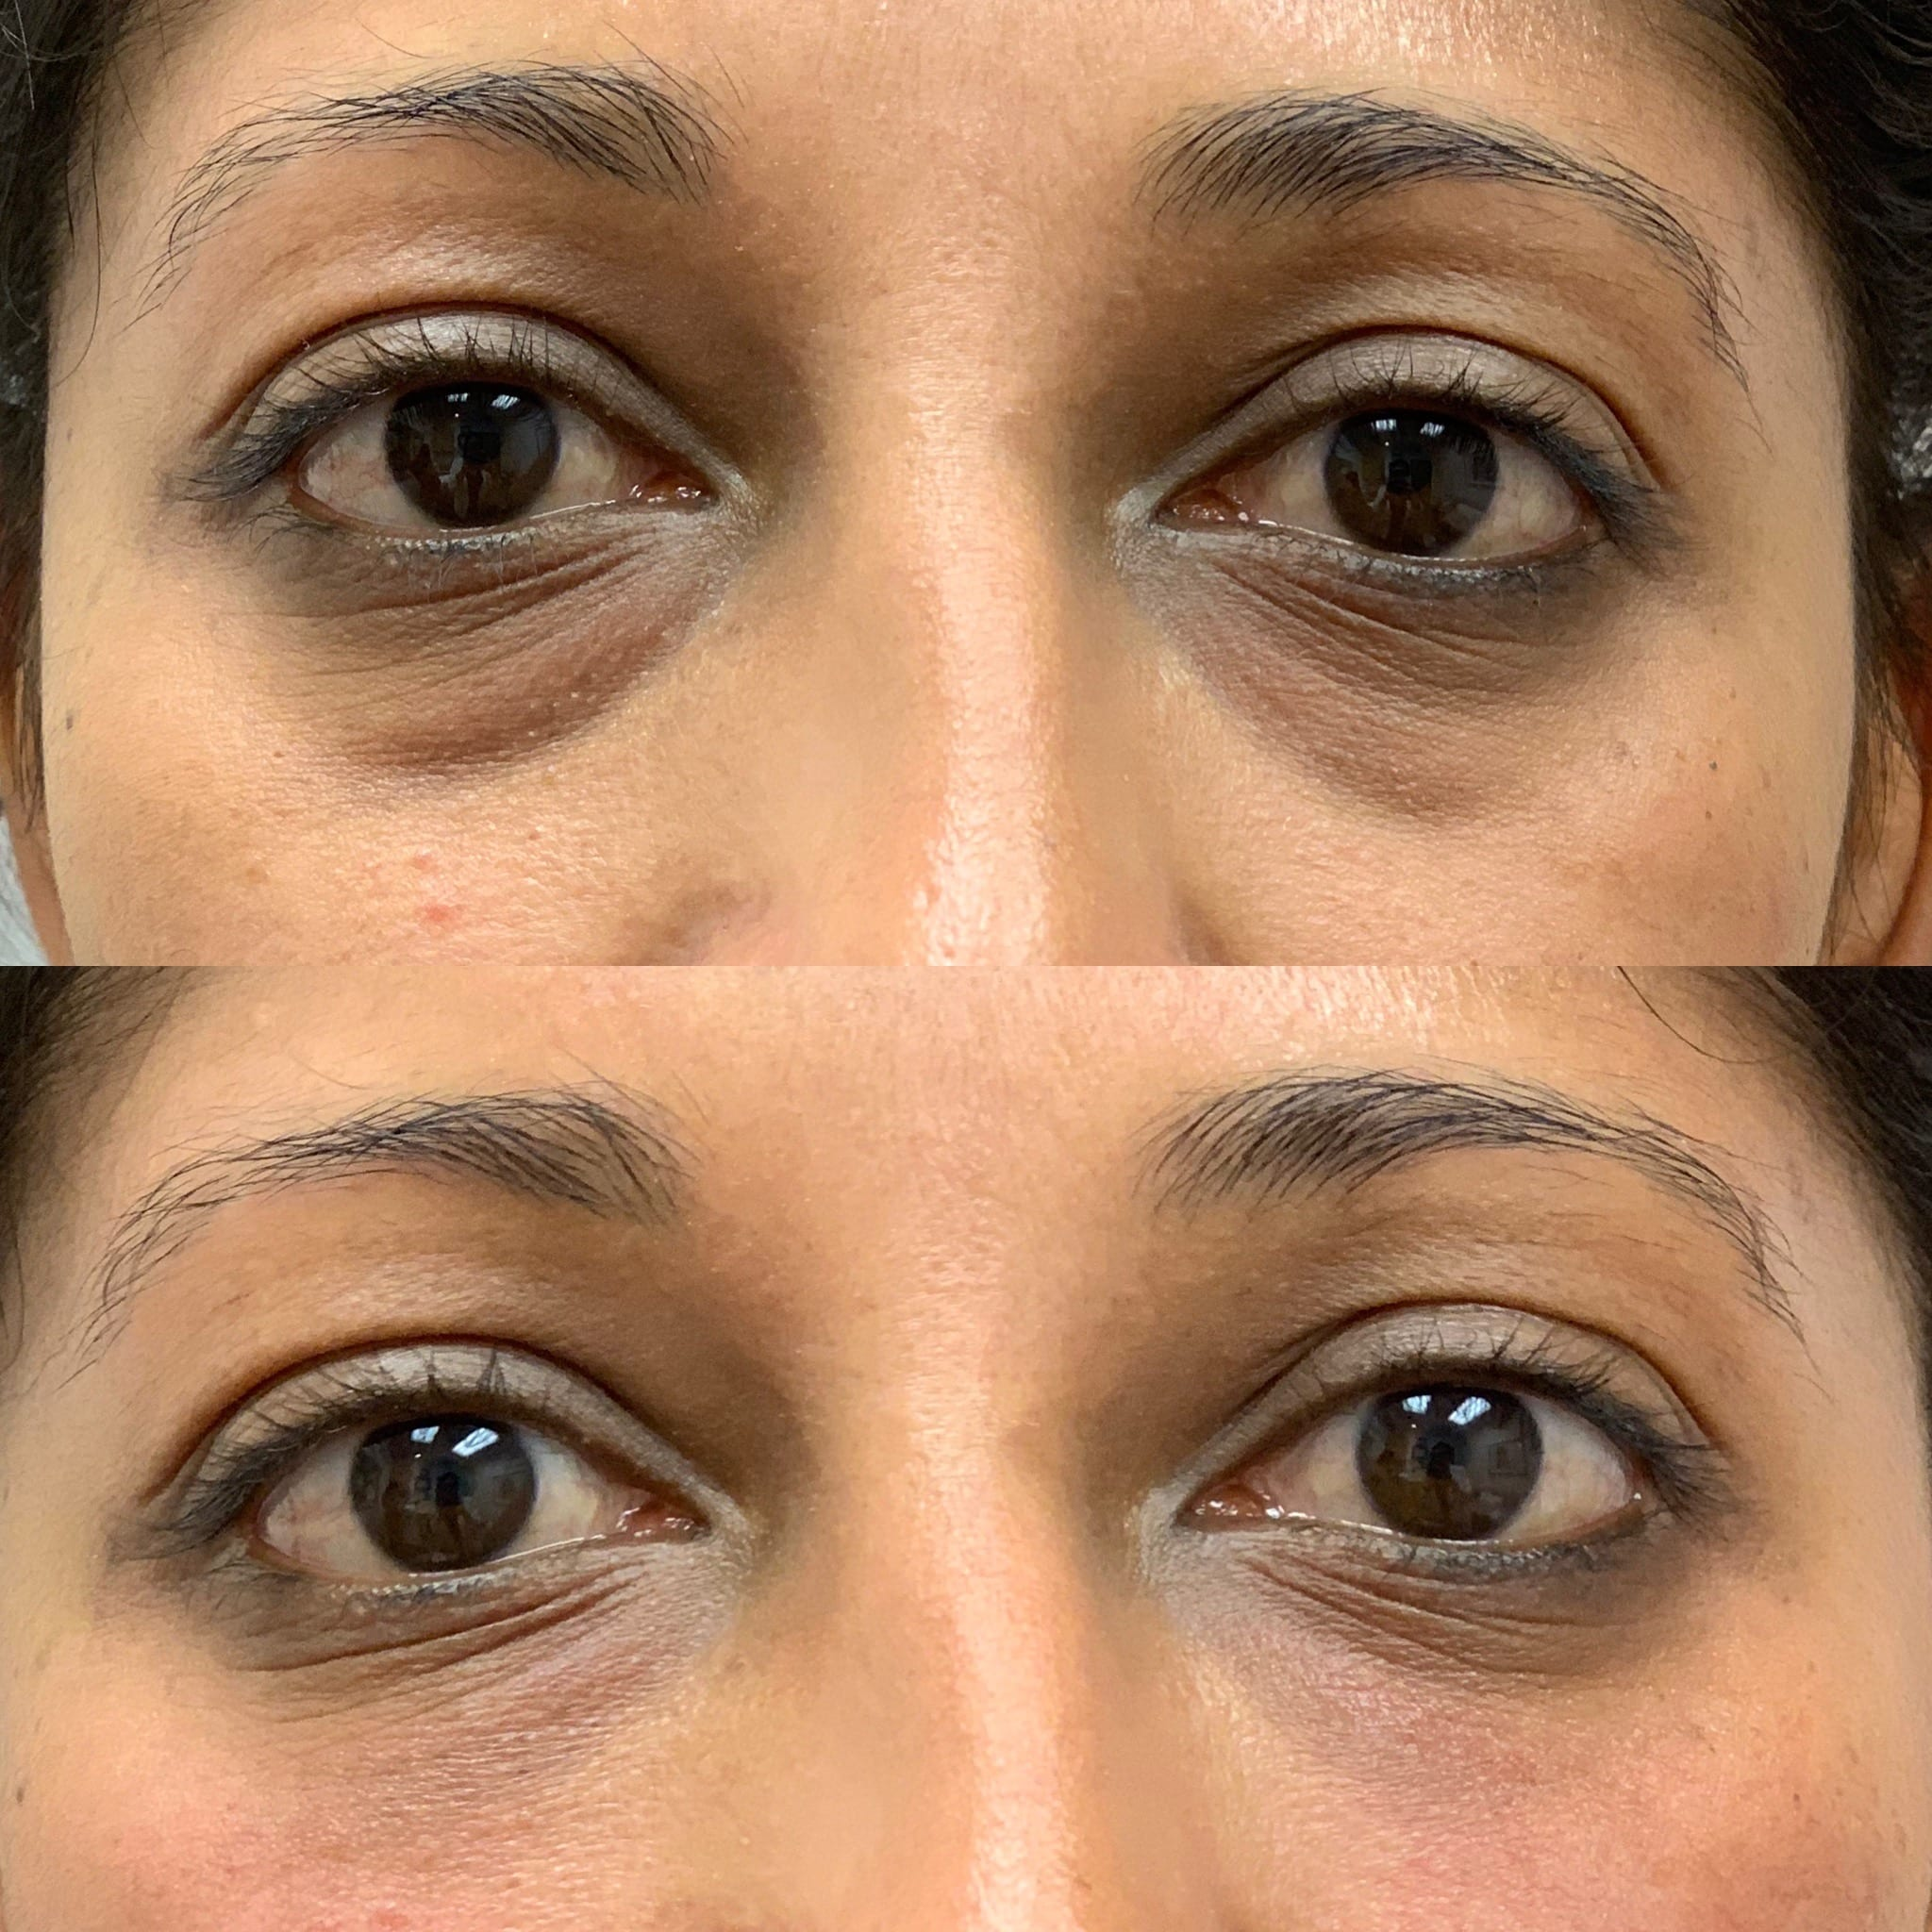 30 y/o East Indian F immediately after tear trough filler using voluma.